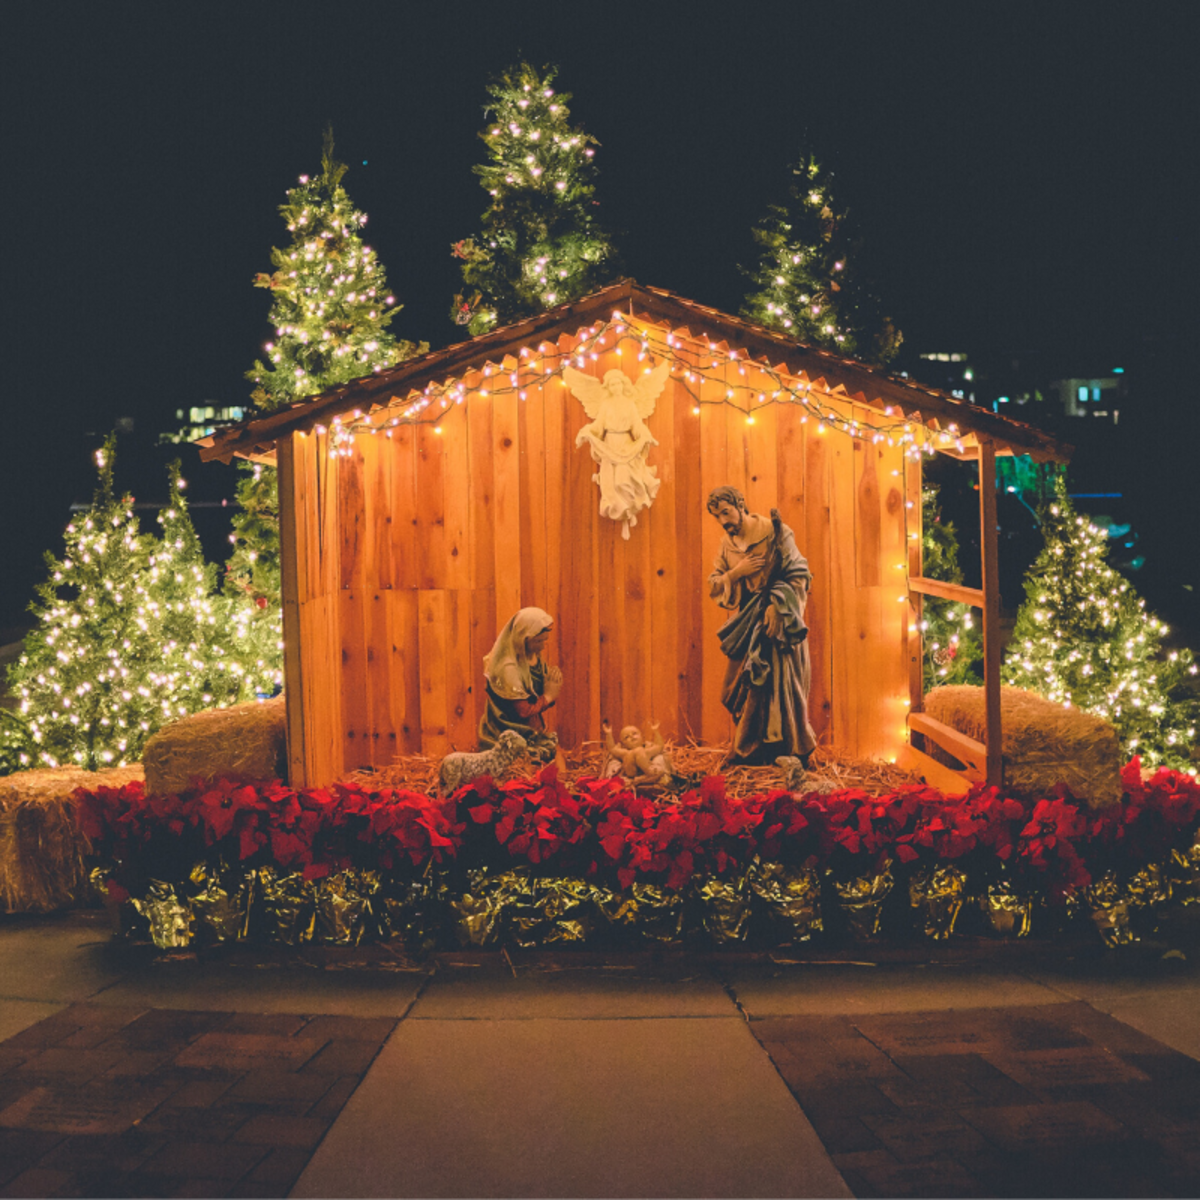 Most churches host special Christmas presentations and events during December.